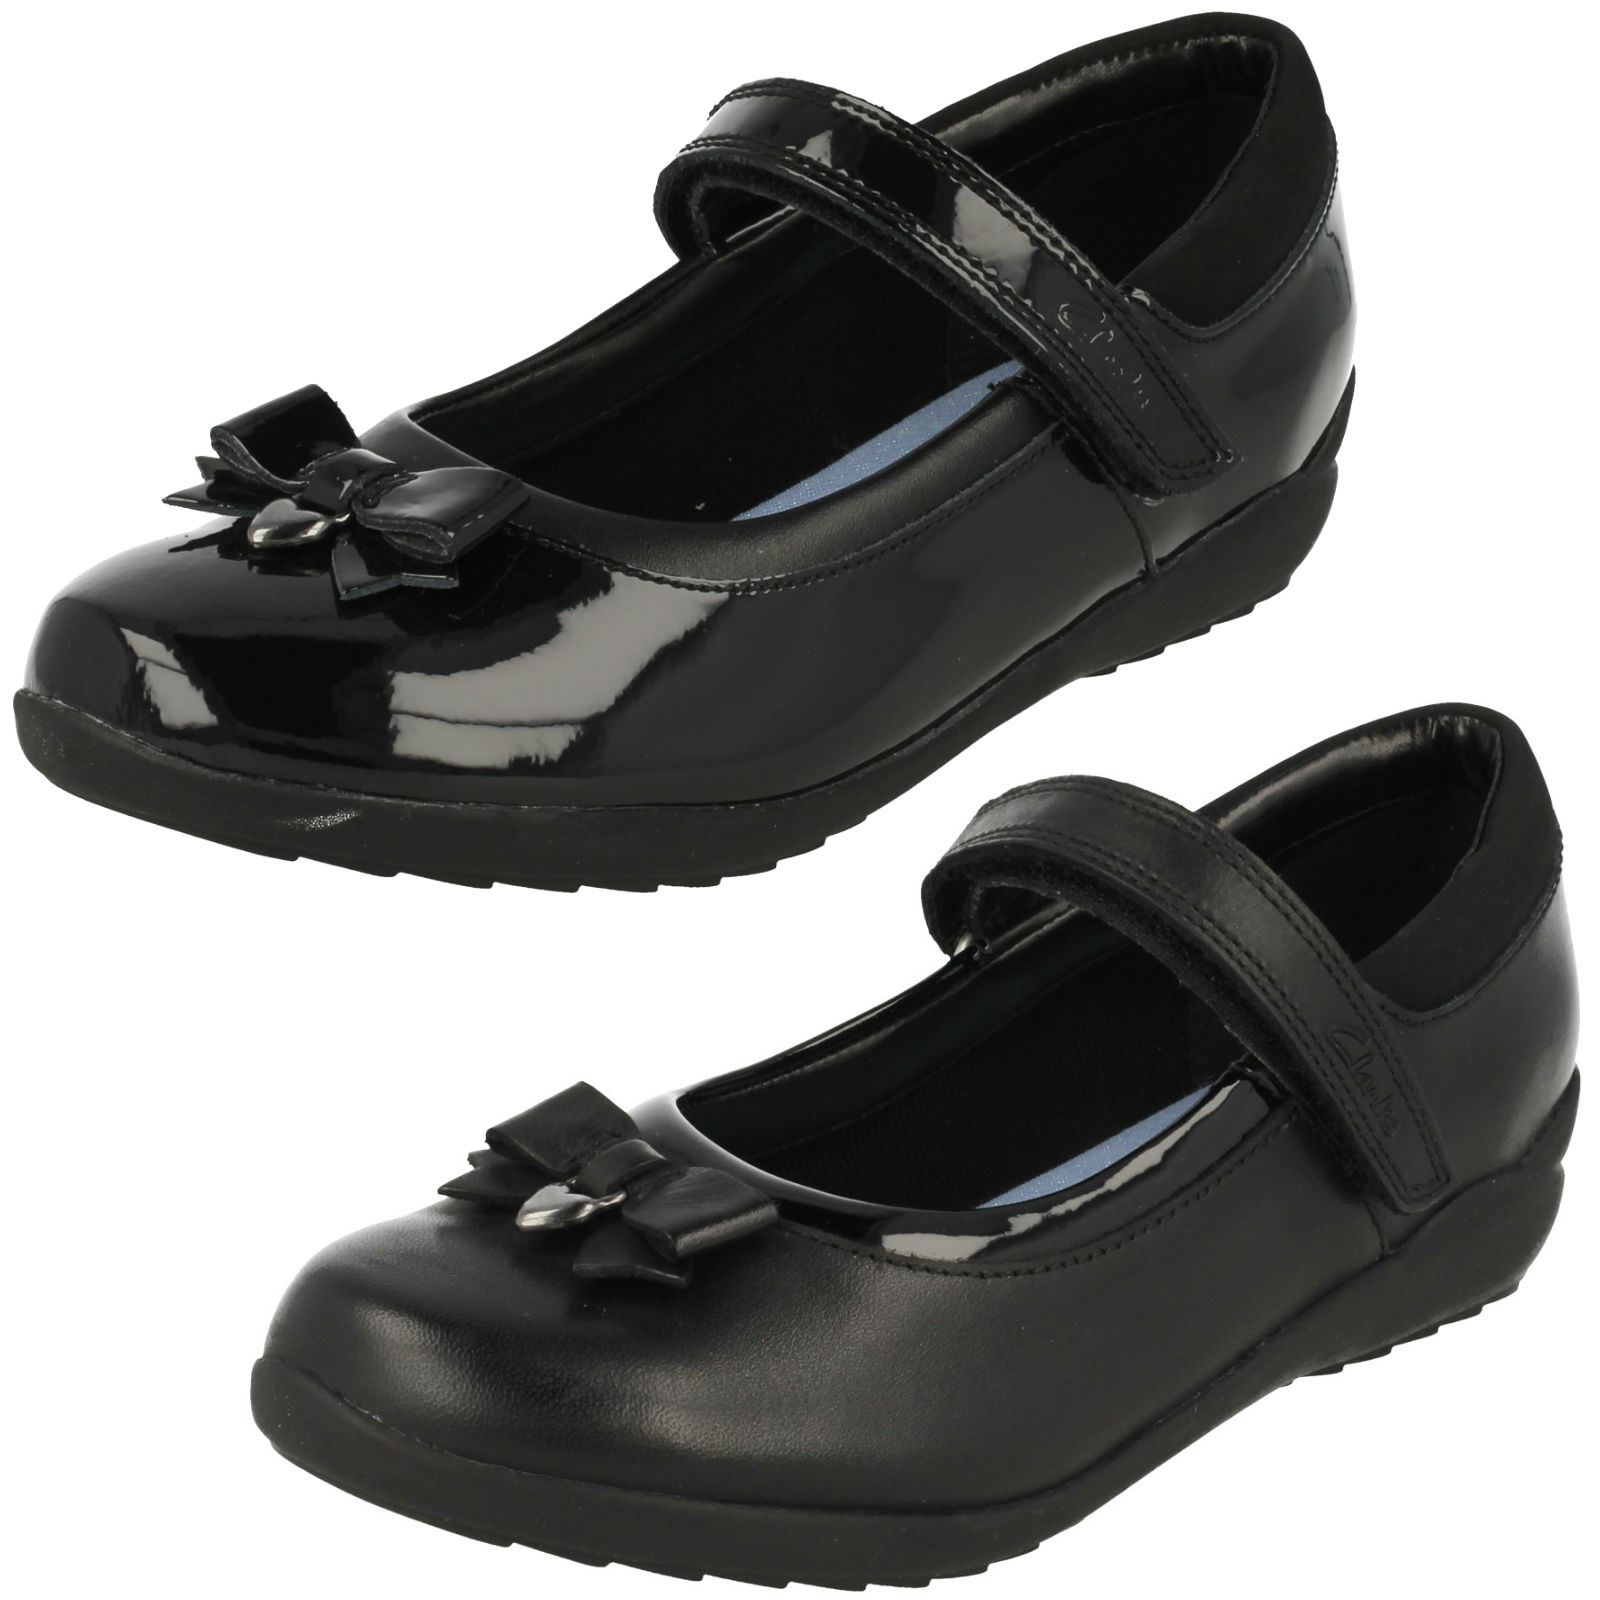 c4e52c383 Girls Clarks Ting Fever School Shoes